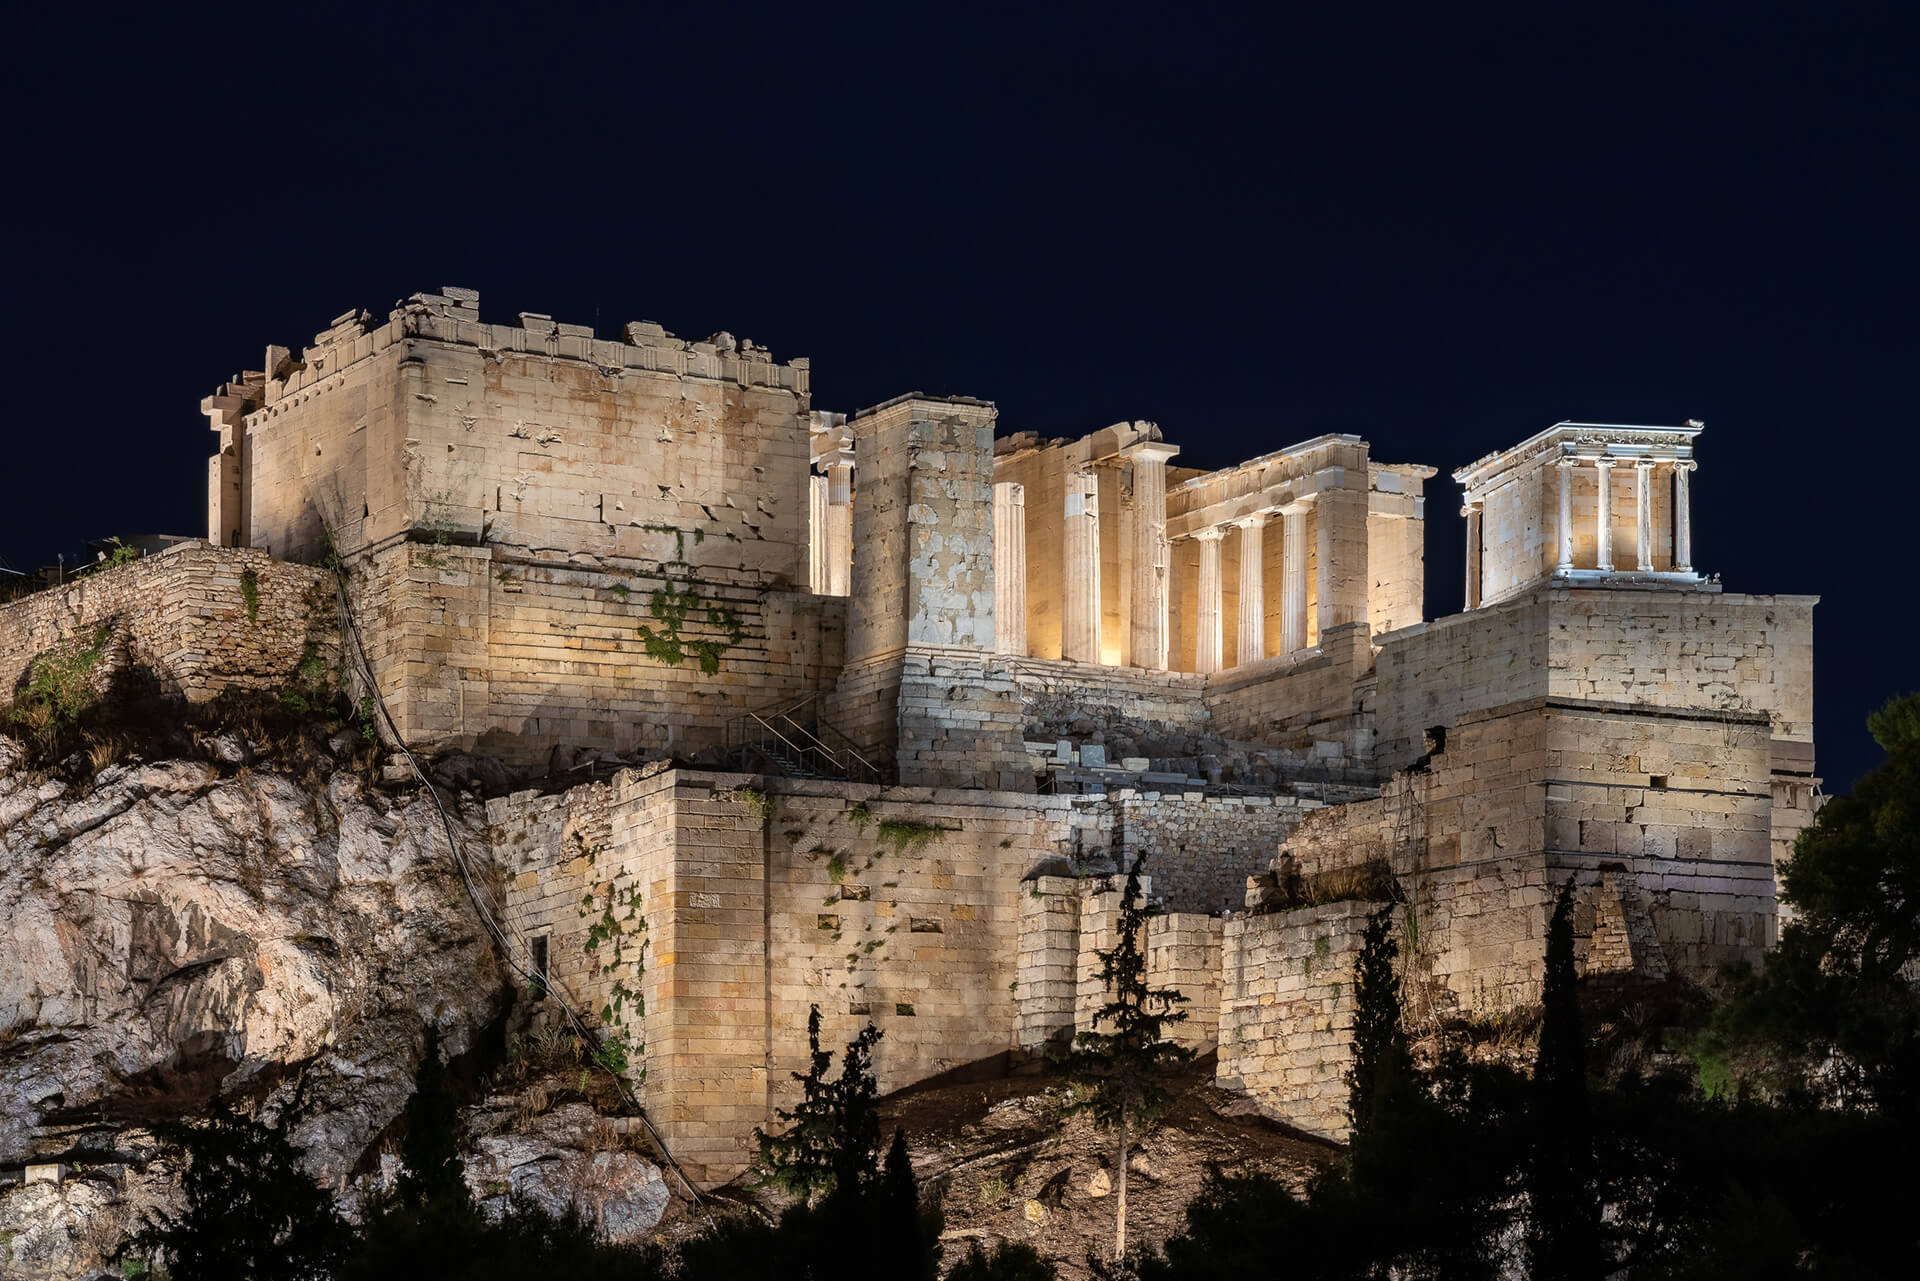 In 2020 the Acropolis was lit-up by sophisticated and picturesque light display, designed by Emmy award winning lighting designer Eleftheria Deko | Acropolis of Athens by Onassis Foundation designed by Eleftheria Deko | STIRworld